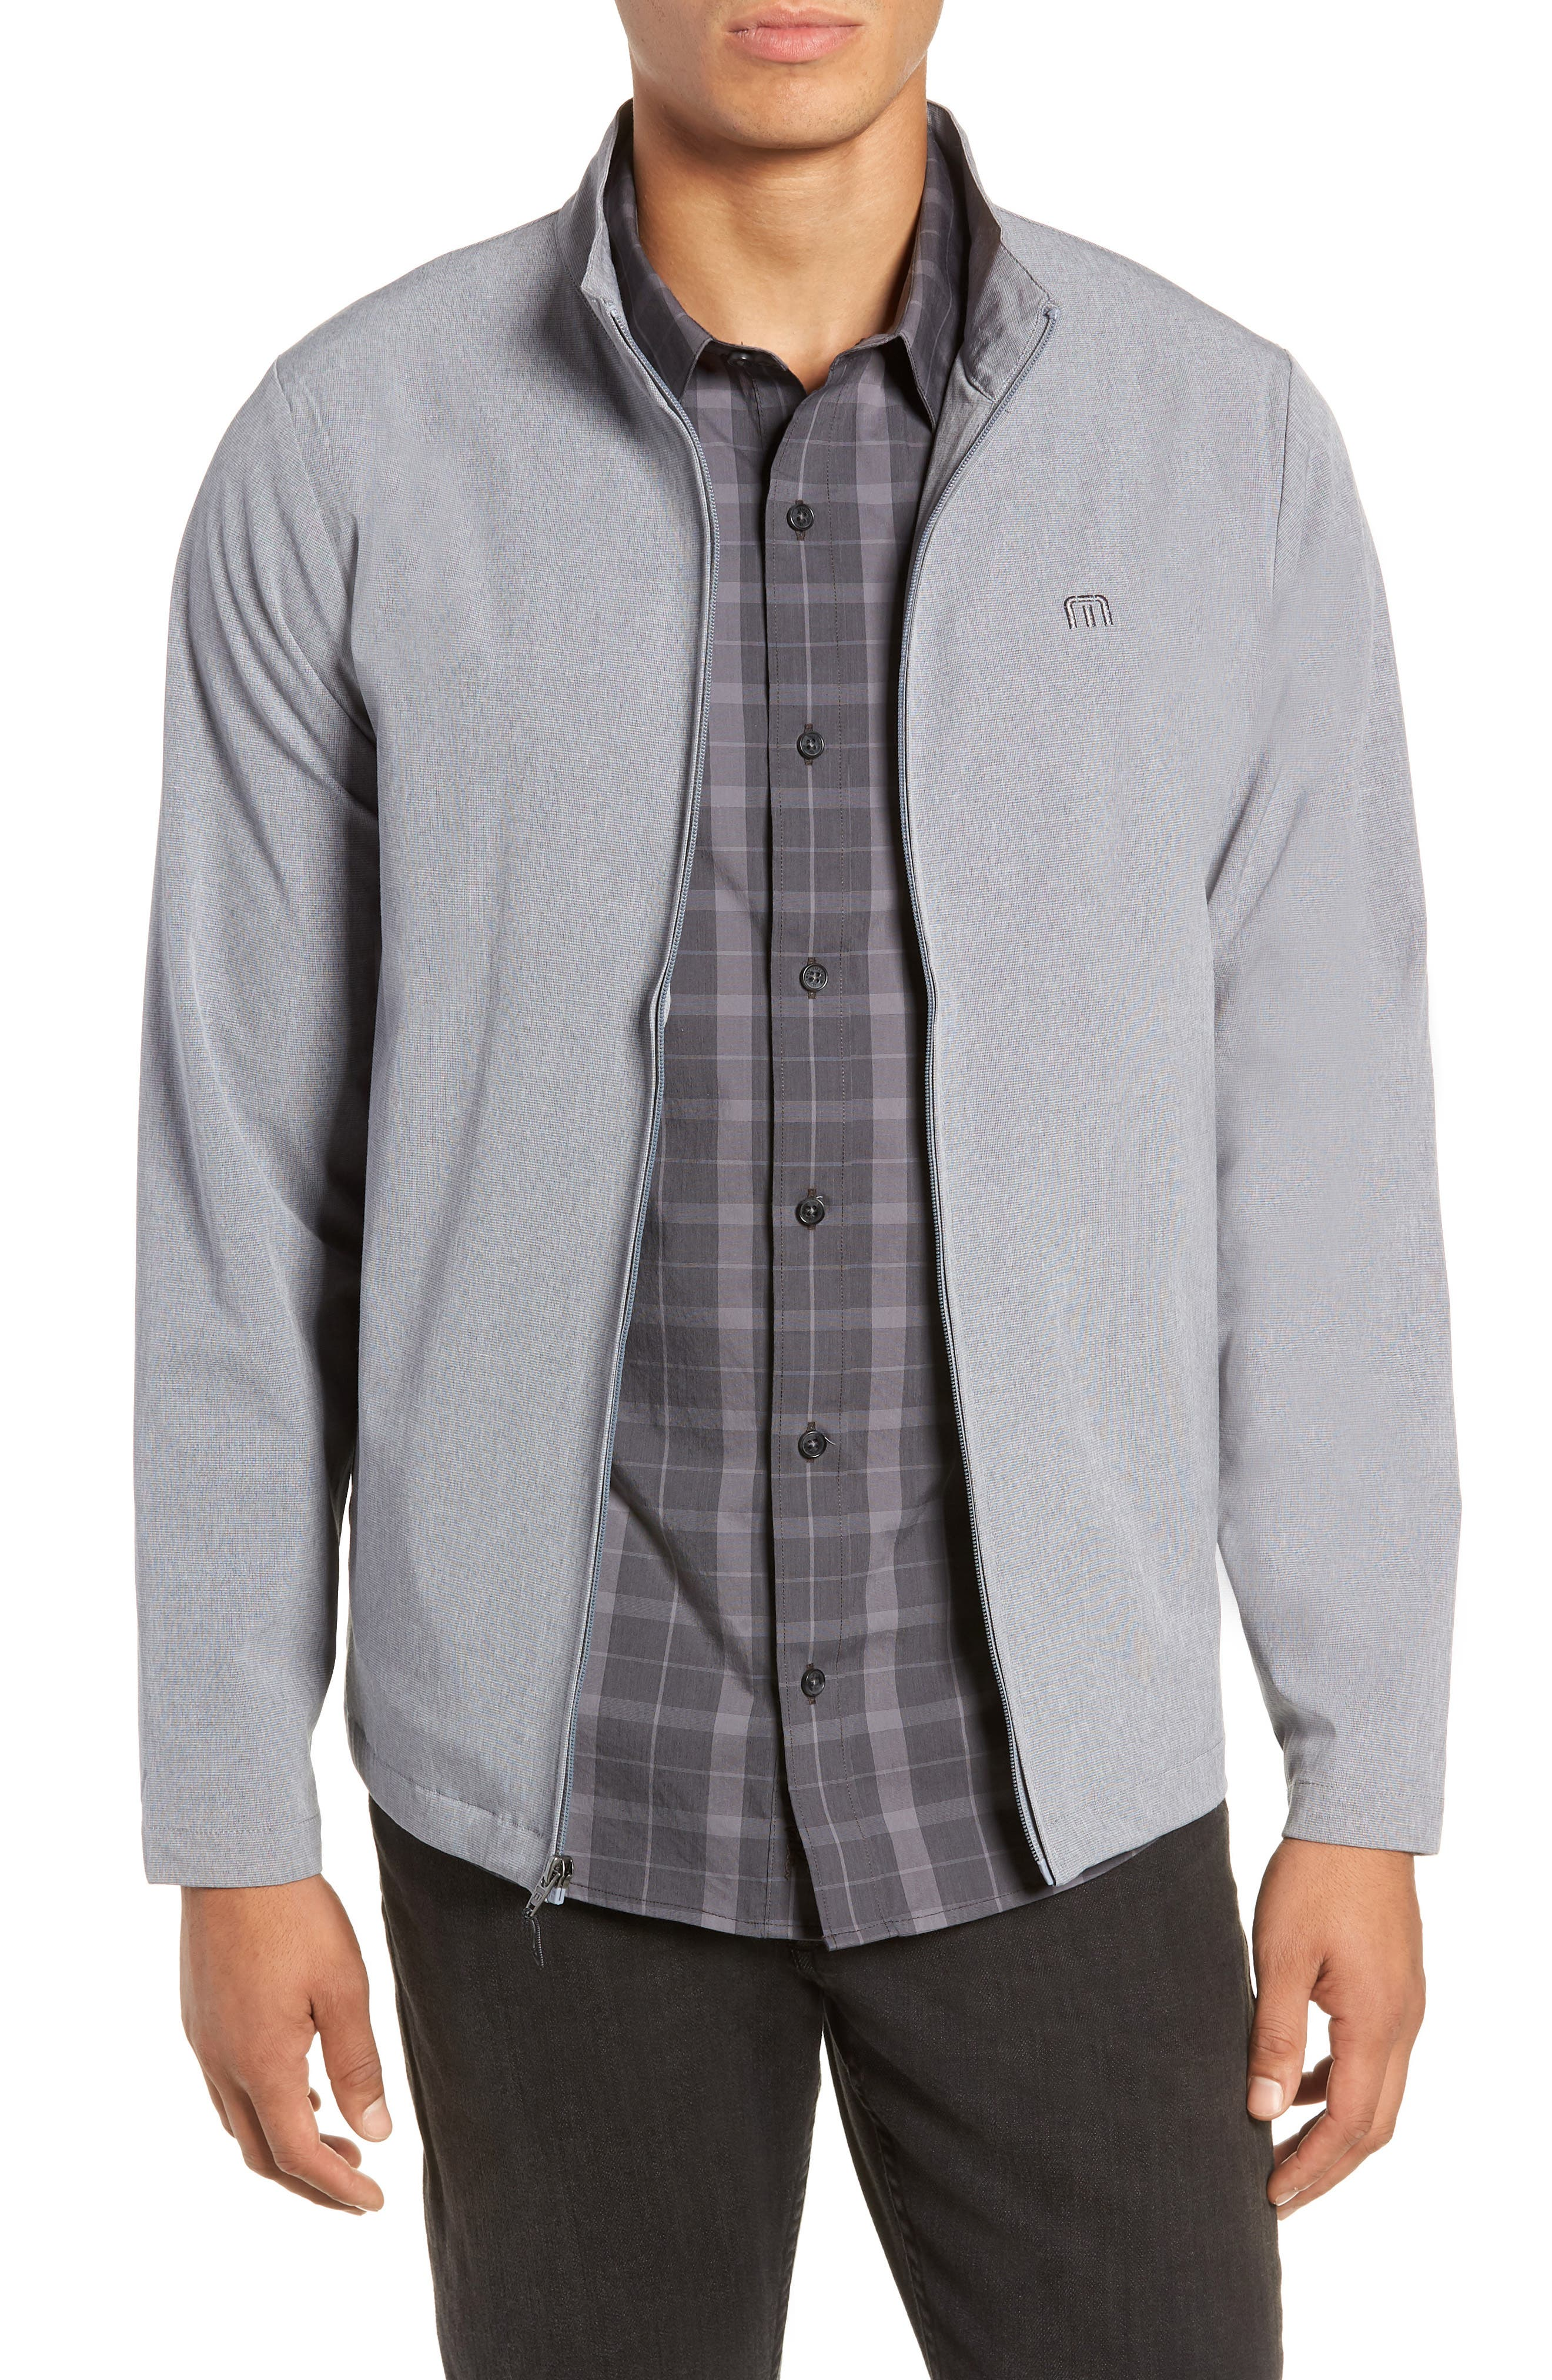 Scorpio Jacket,                         Main,                         color, HEATHER GREY BECK/ BLUE MESH